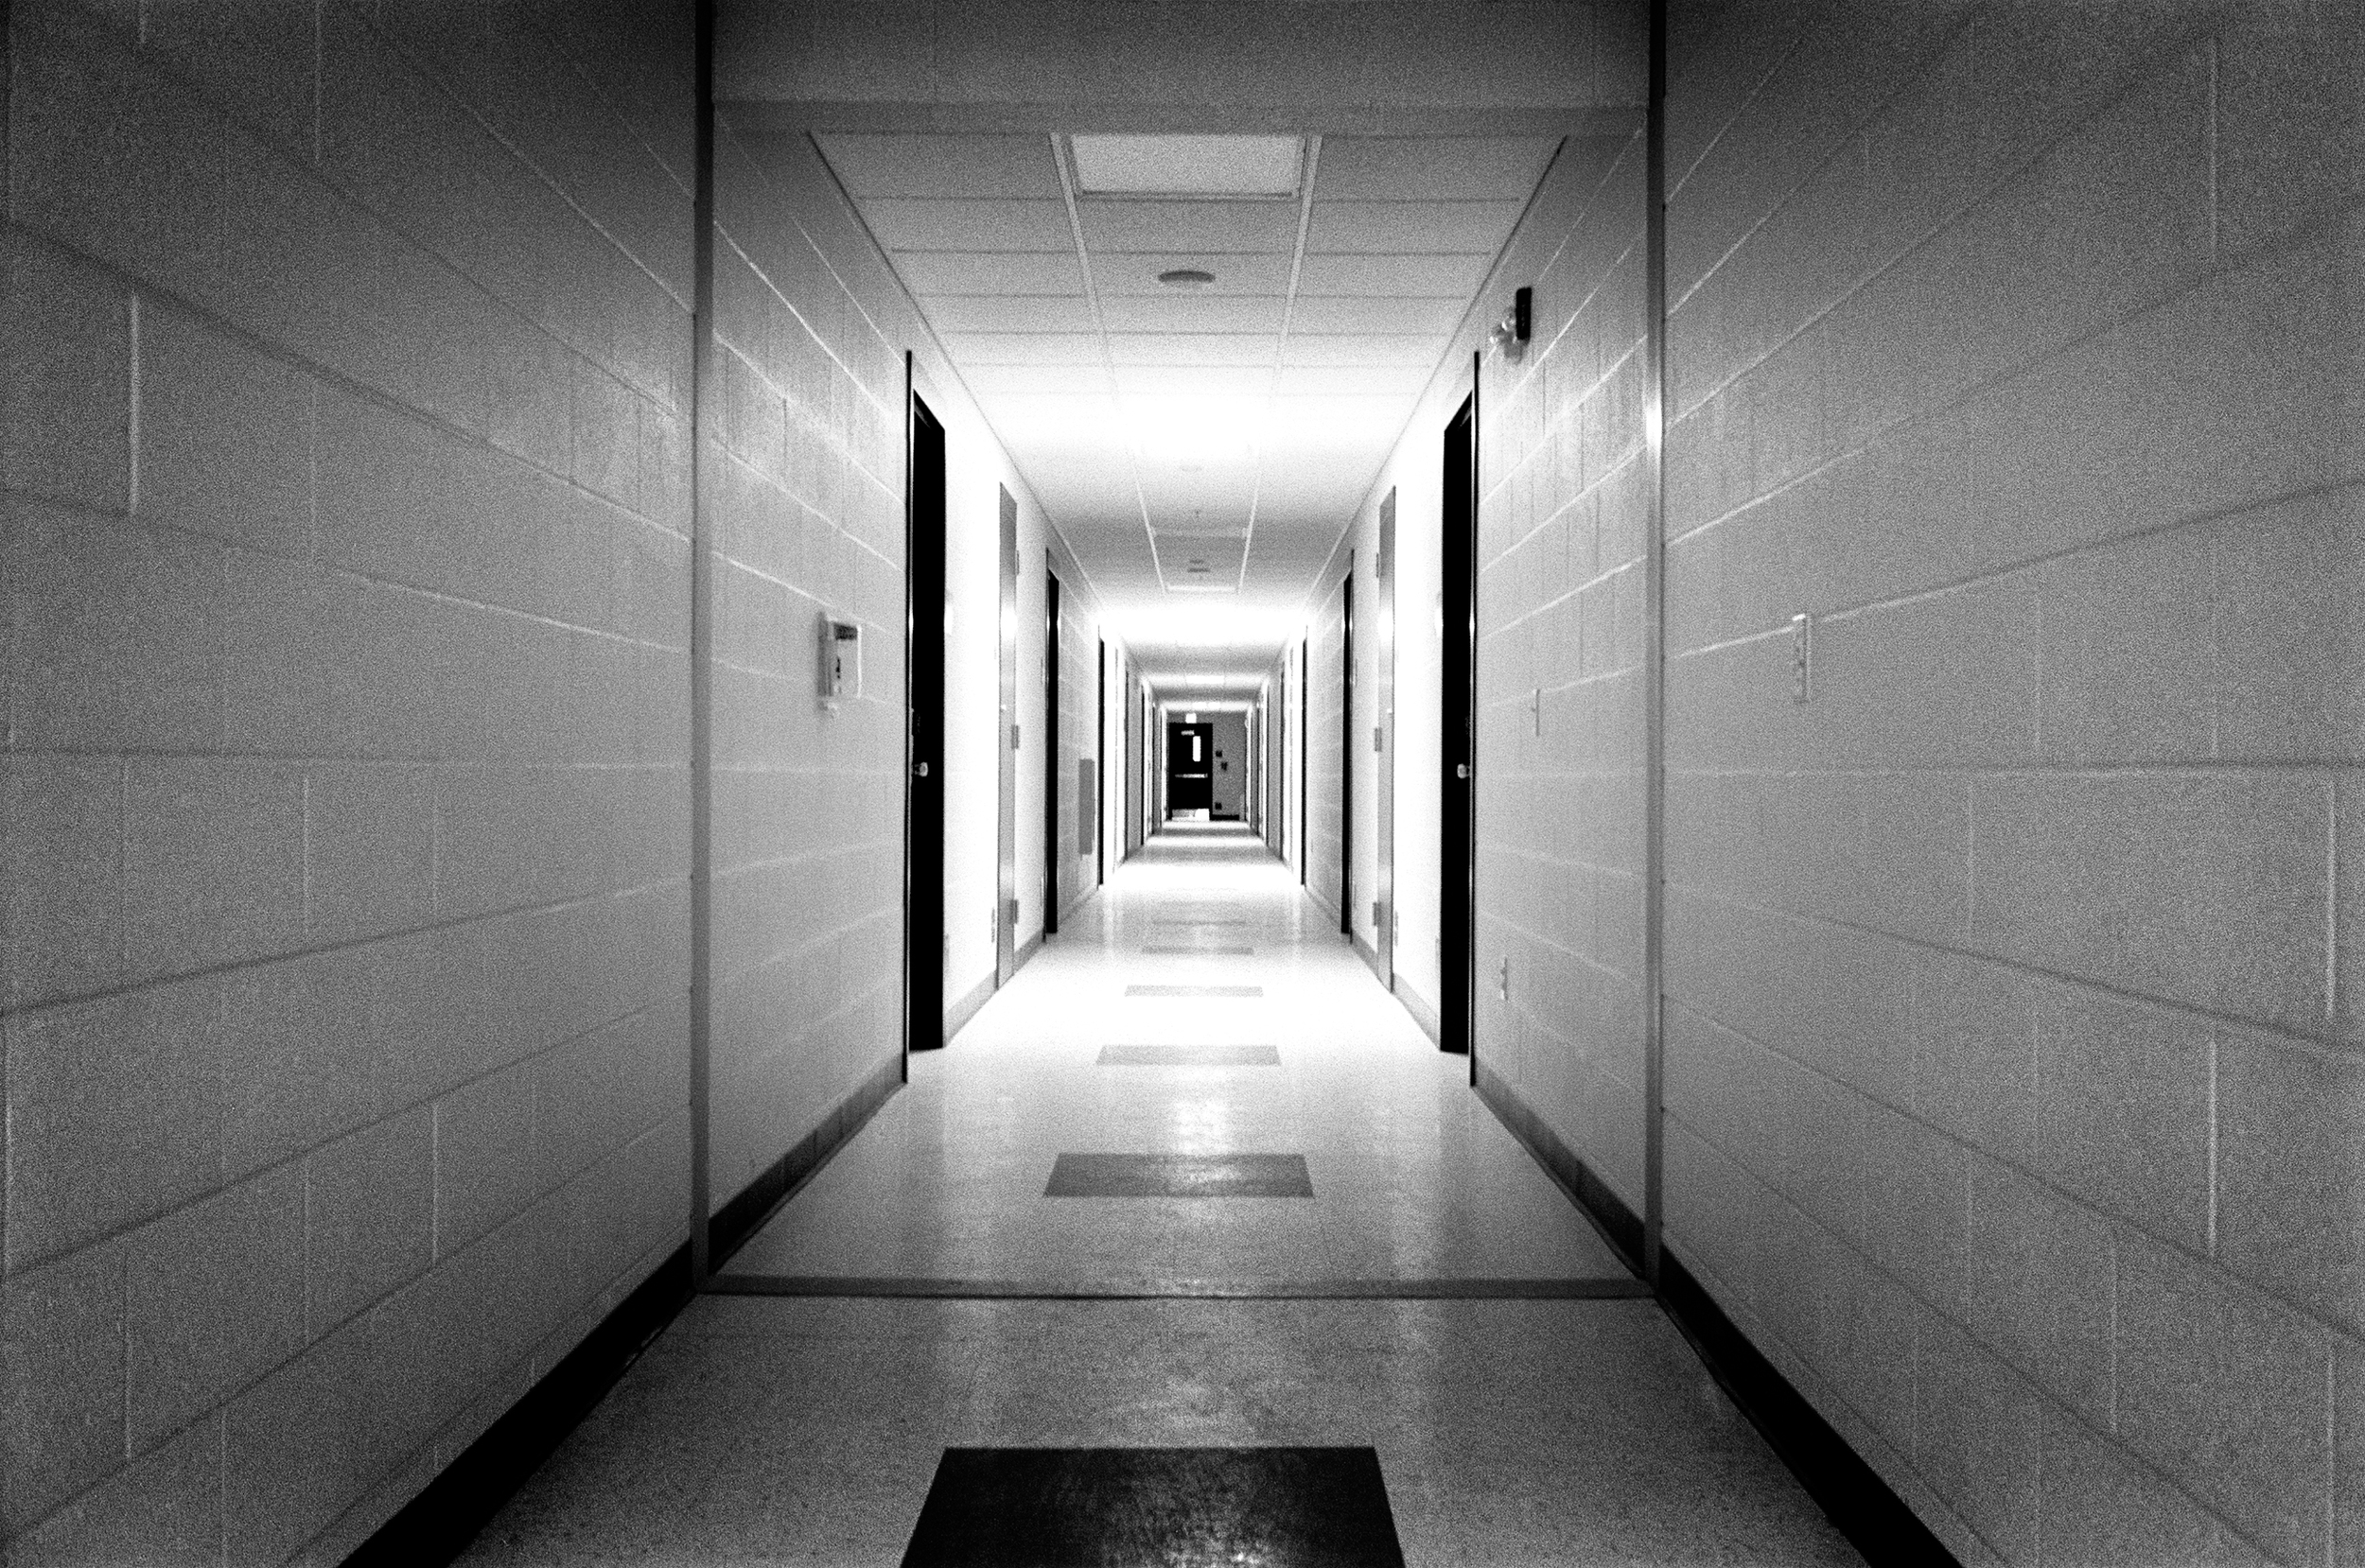 The barrack hallways stand deserted while soldiers are on leave; Fort Drum, 2010.